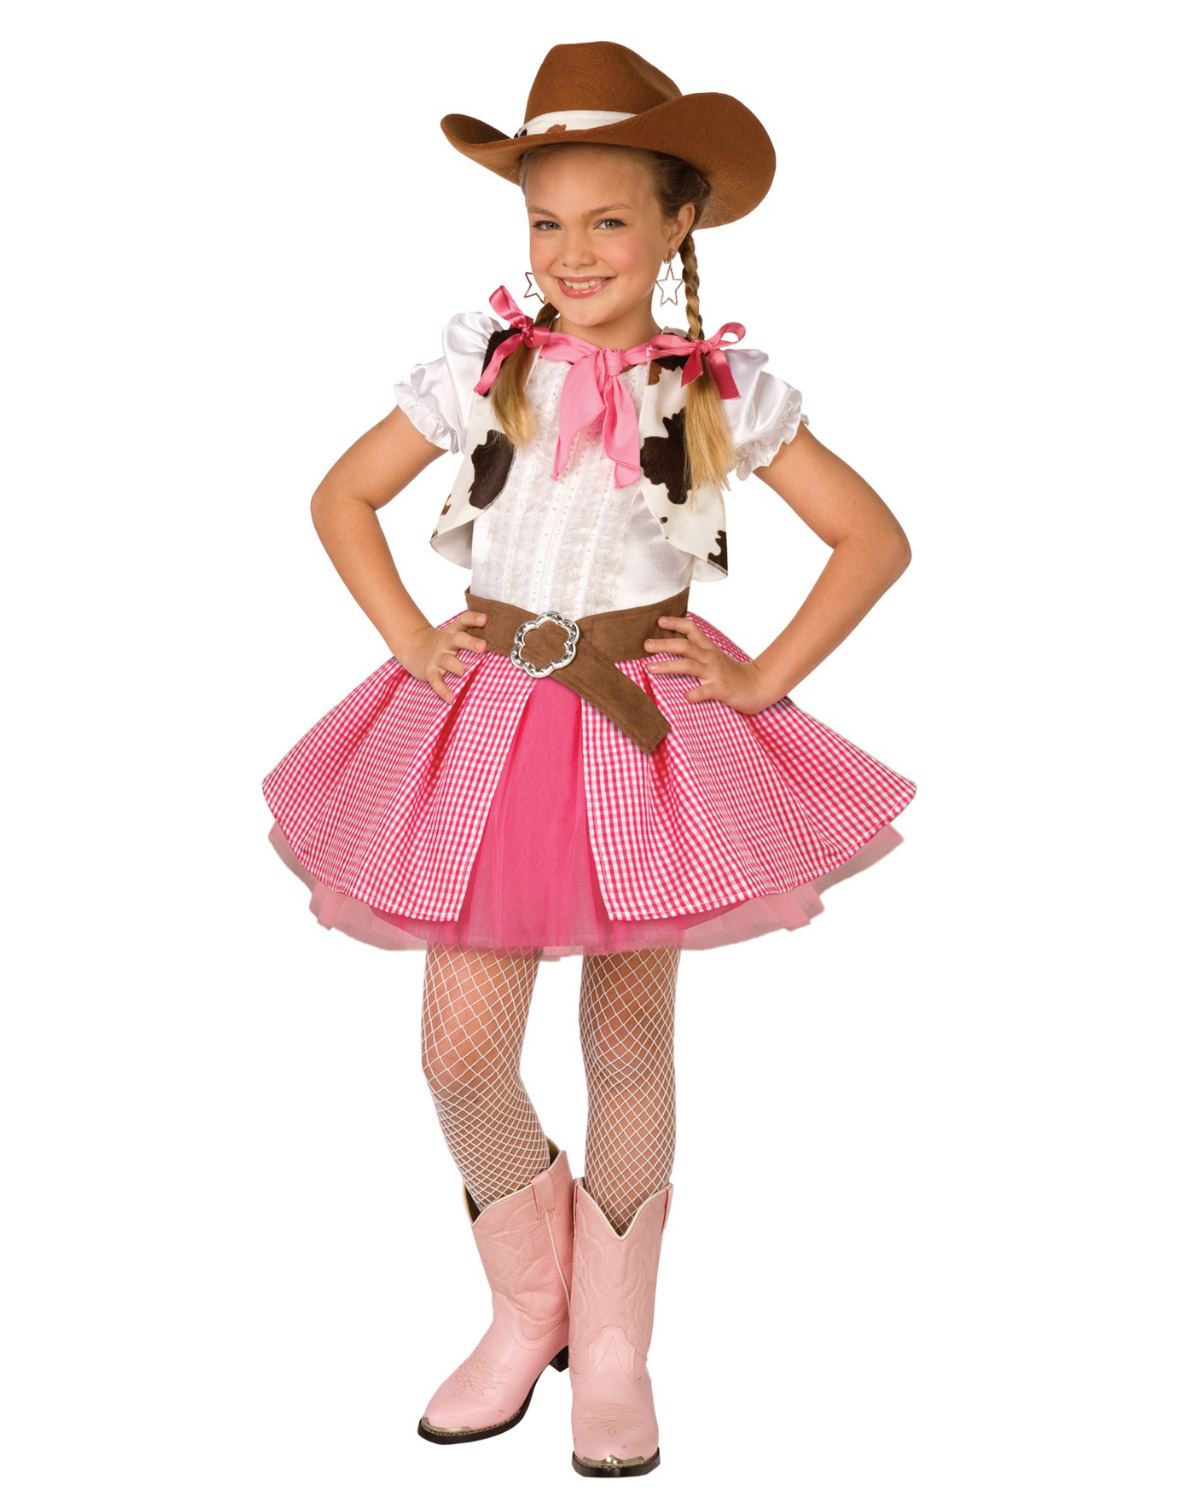 'Living Fiction LF4008 Cowgirl Cutie Children'